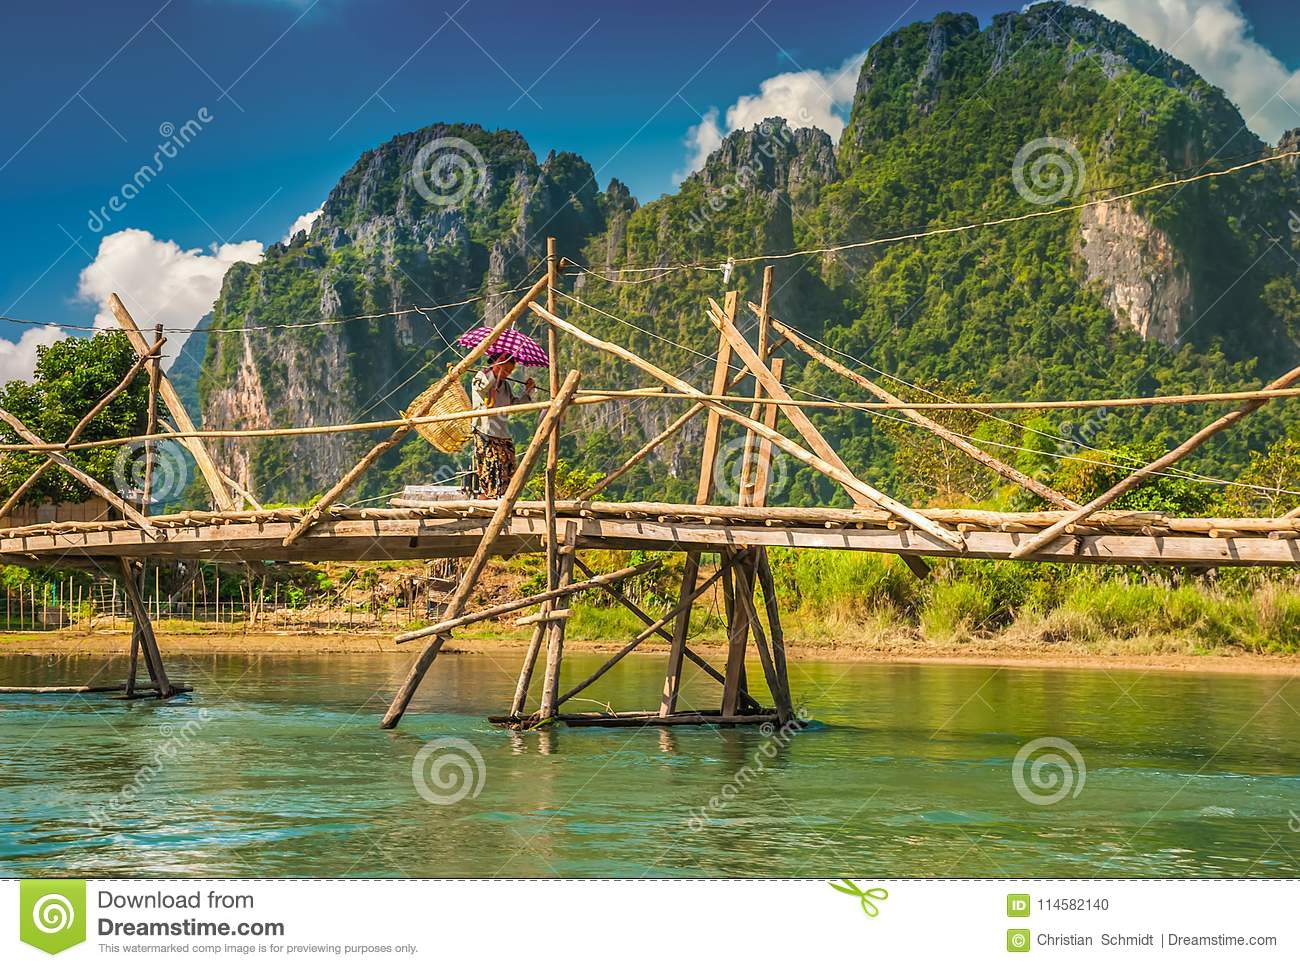 A local woman with a sun umbrella crosses a bamboo bridge in Laos